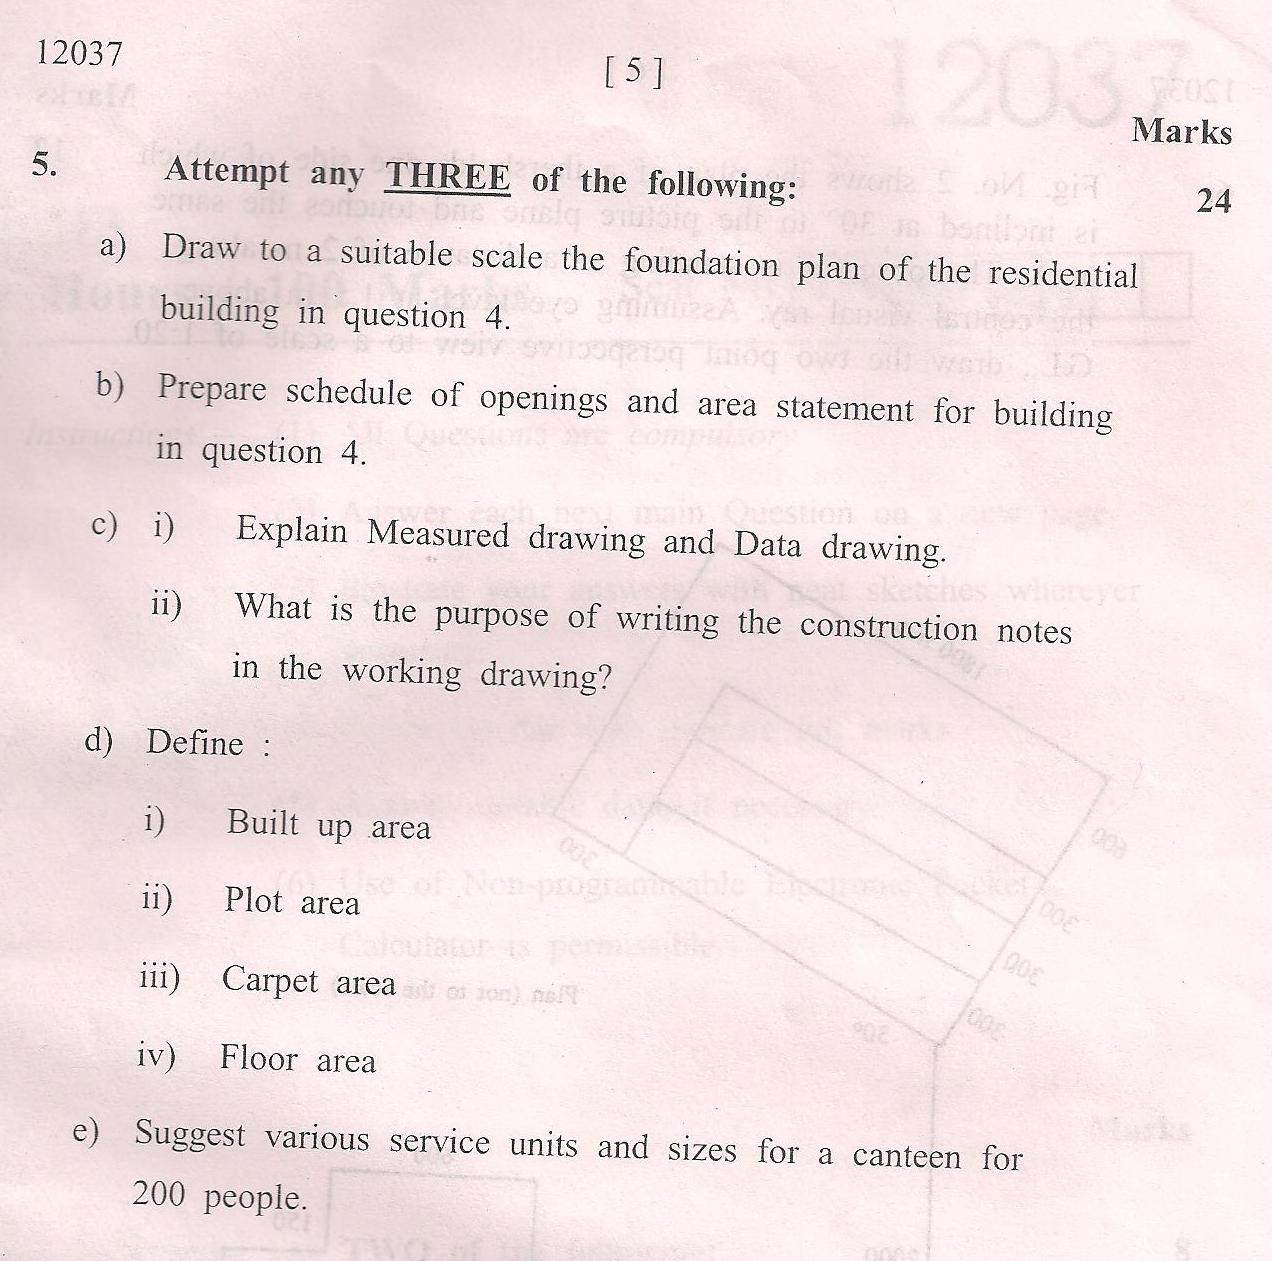 construction essay questions Questions and answers related to igc1 elements 1 to 5 give the meaning of the term perception (2) perception is the way we see and understandthings using all our senses, experience, training and general knowledge.